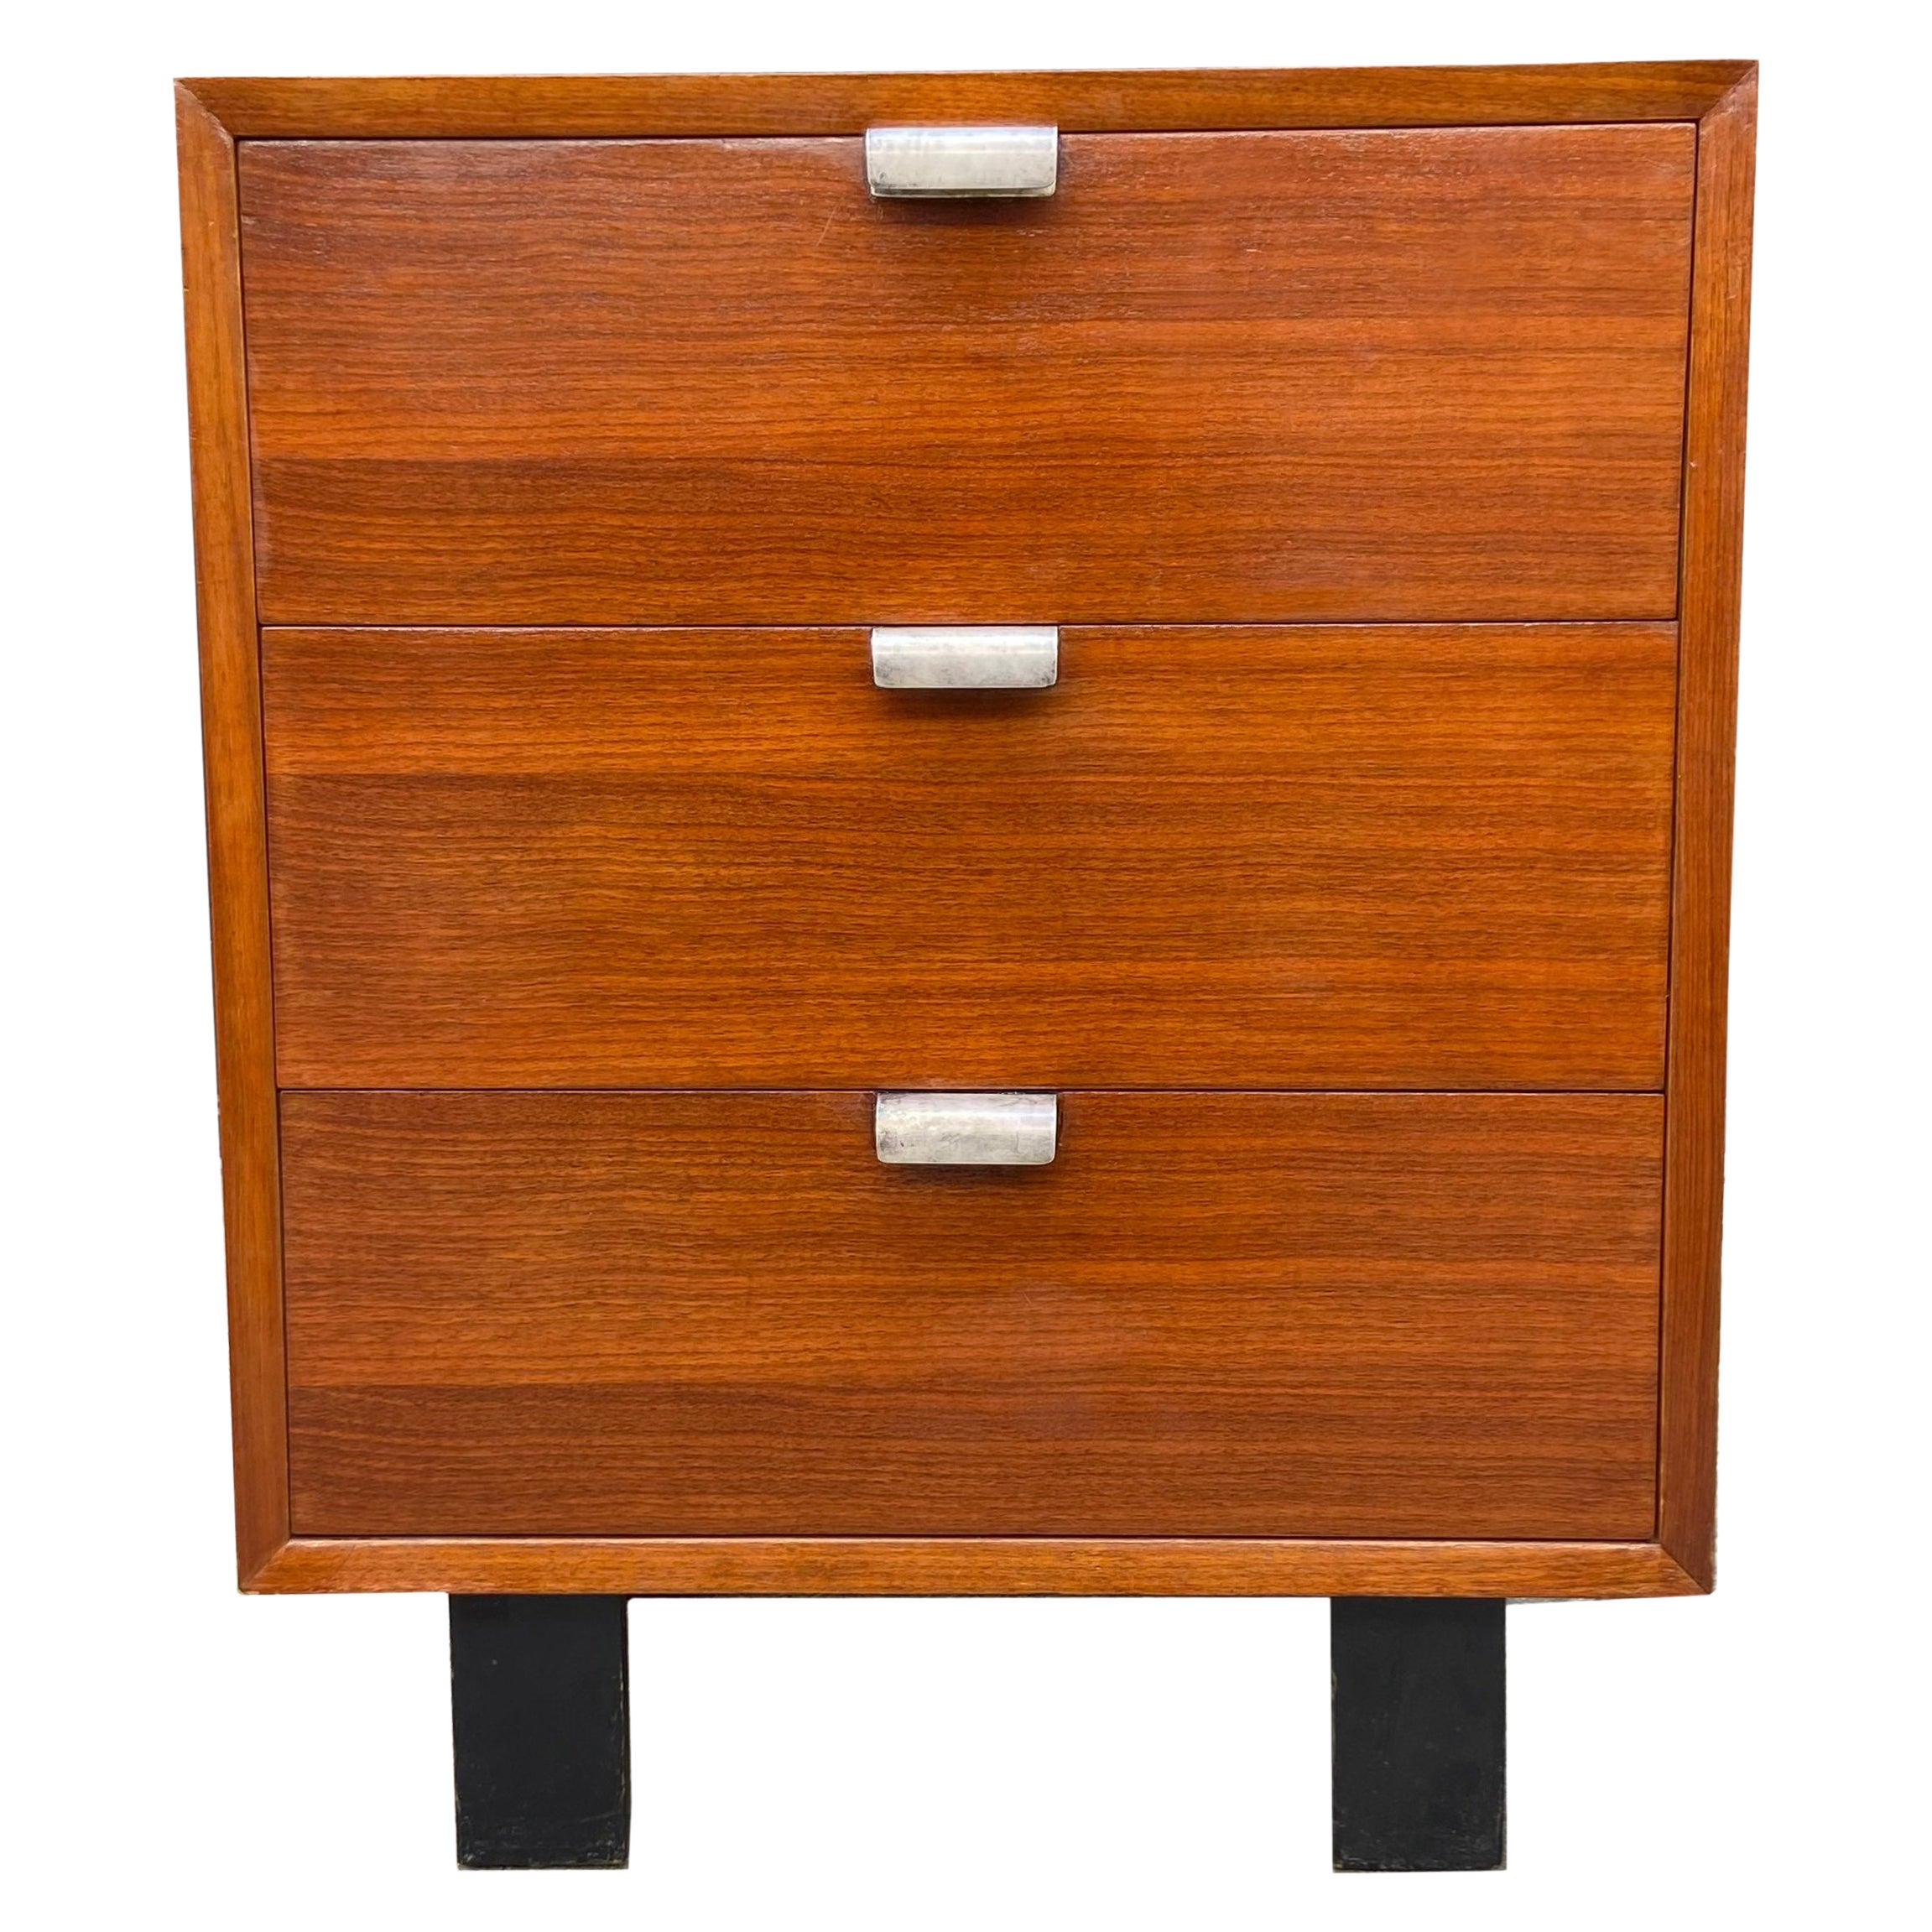 Midcentury George Nelson Three Drawer Cabinet for Herman Miller